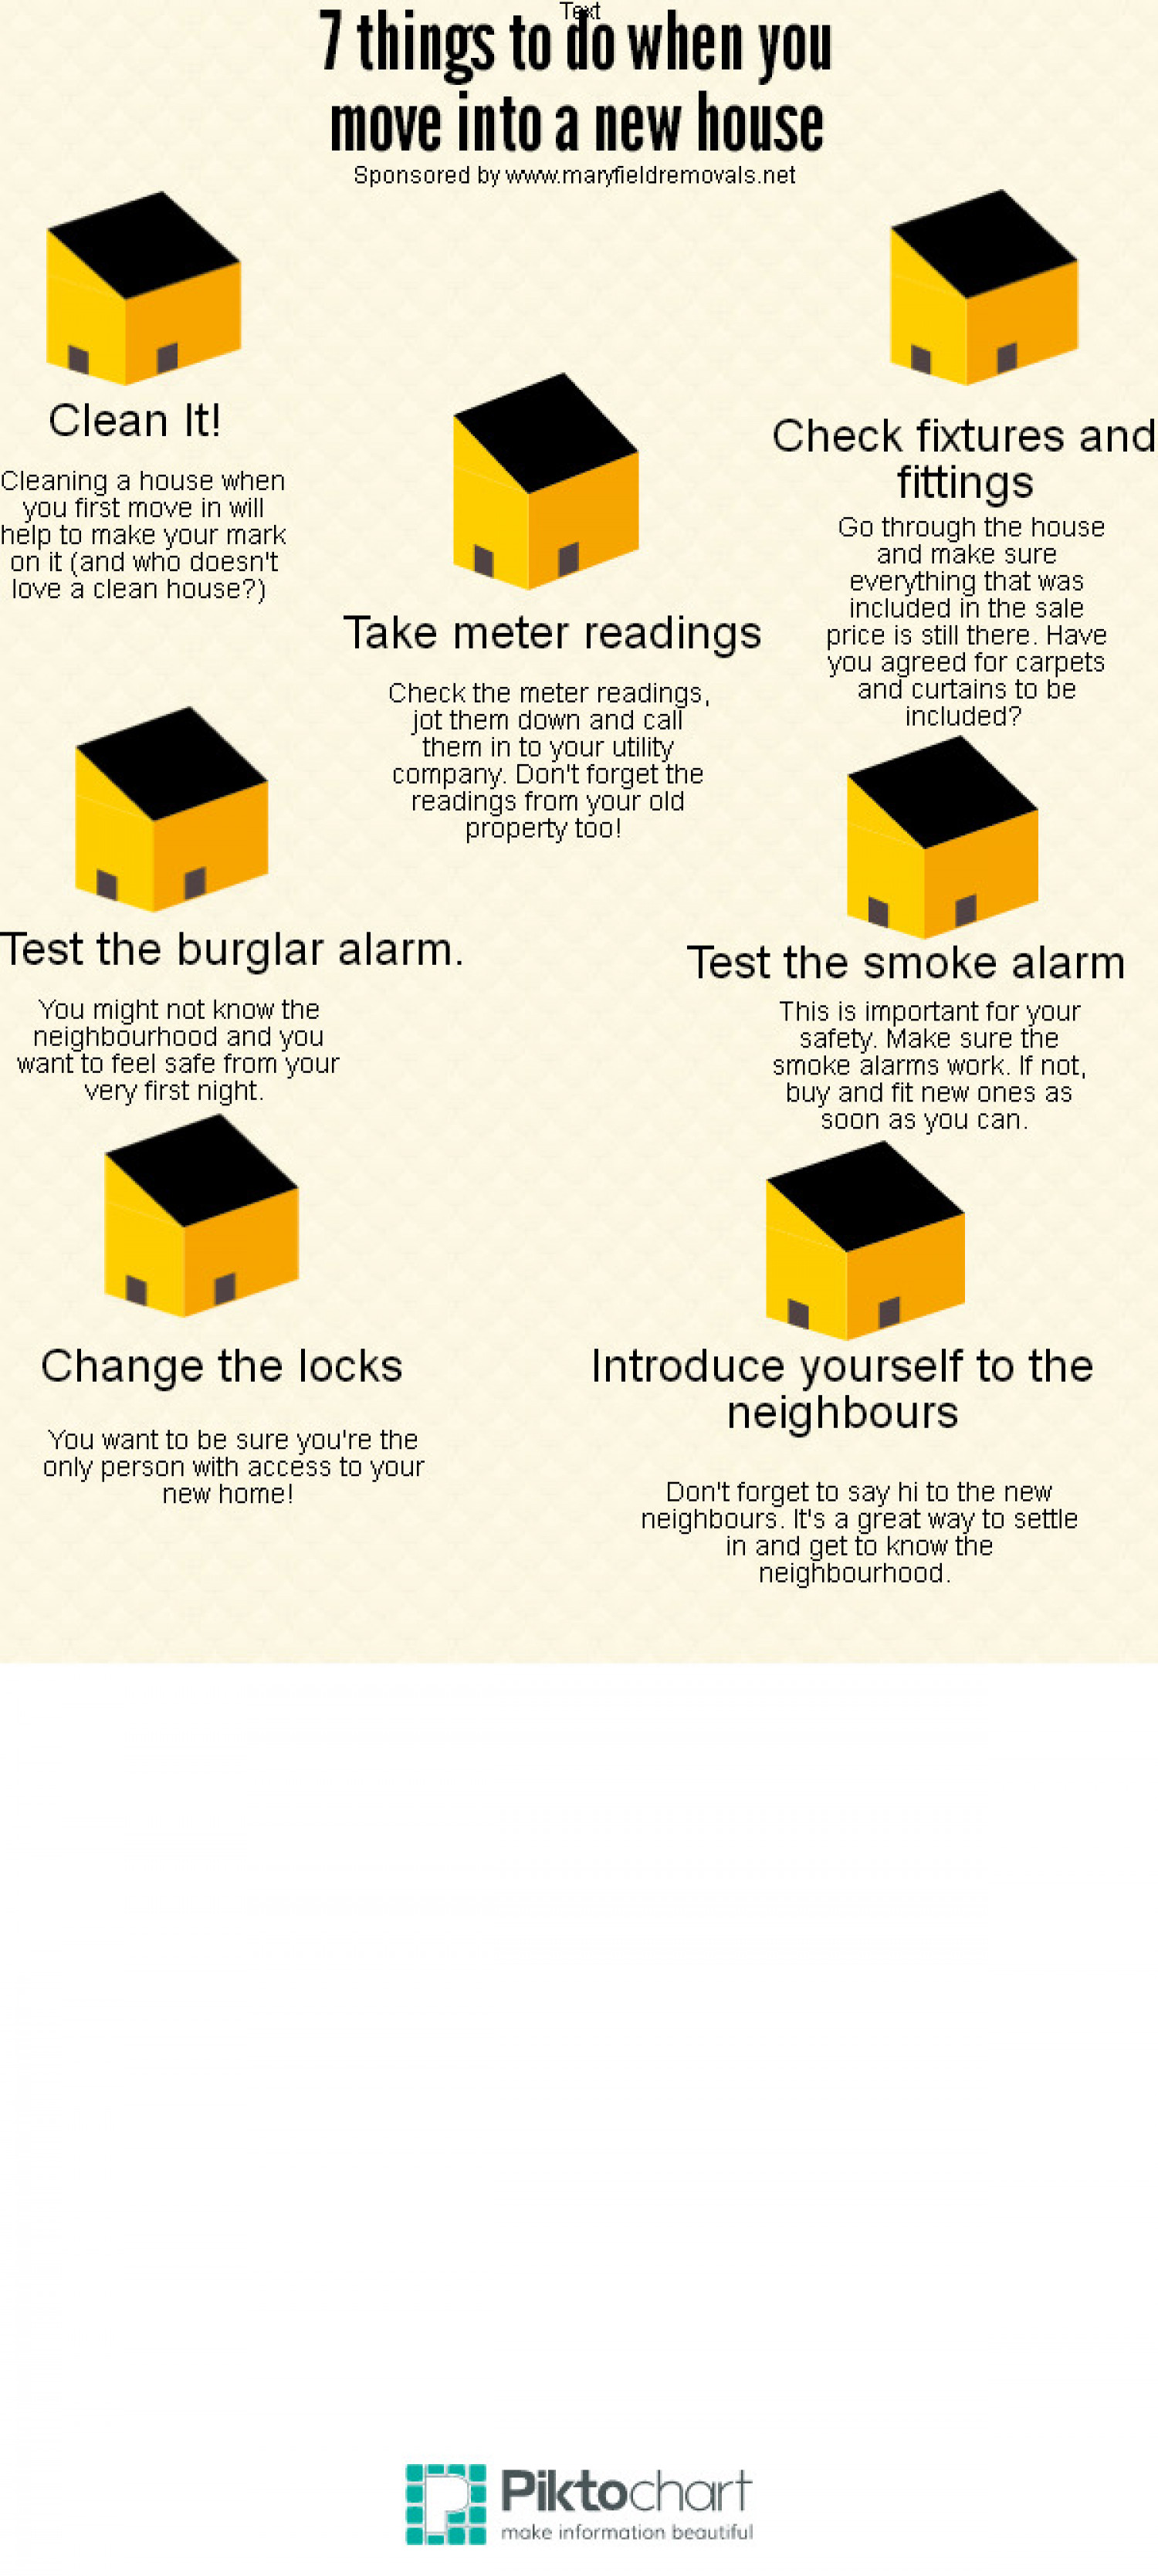 7 Things To Do When Moving Into A New House Infographic